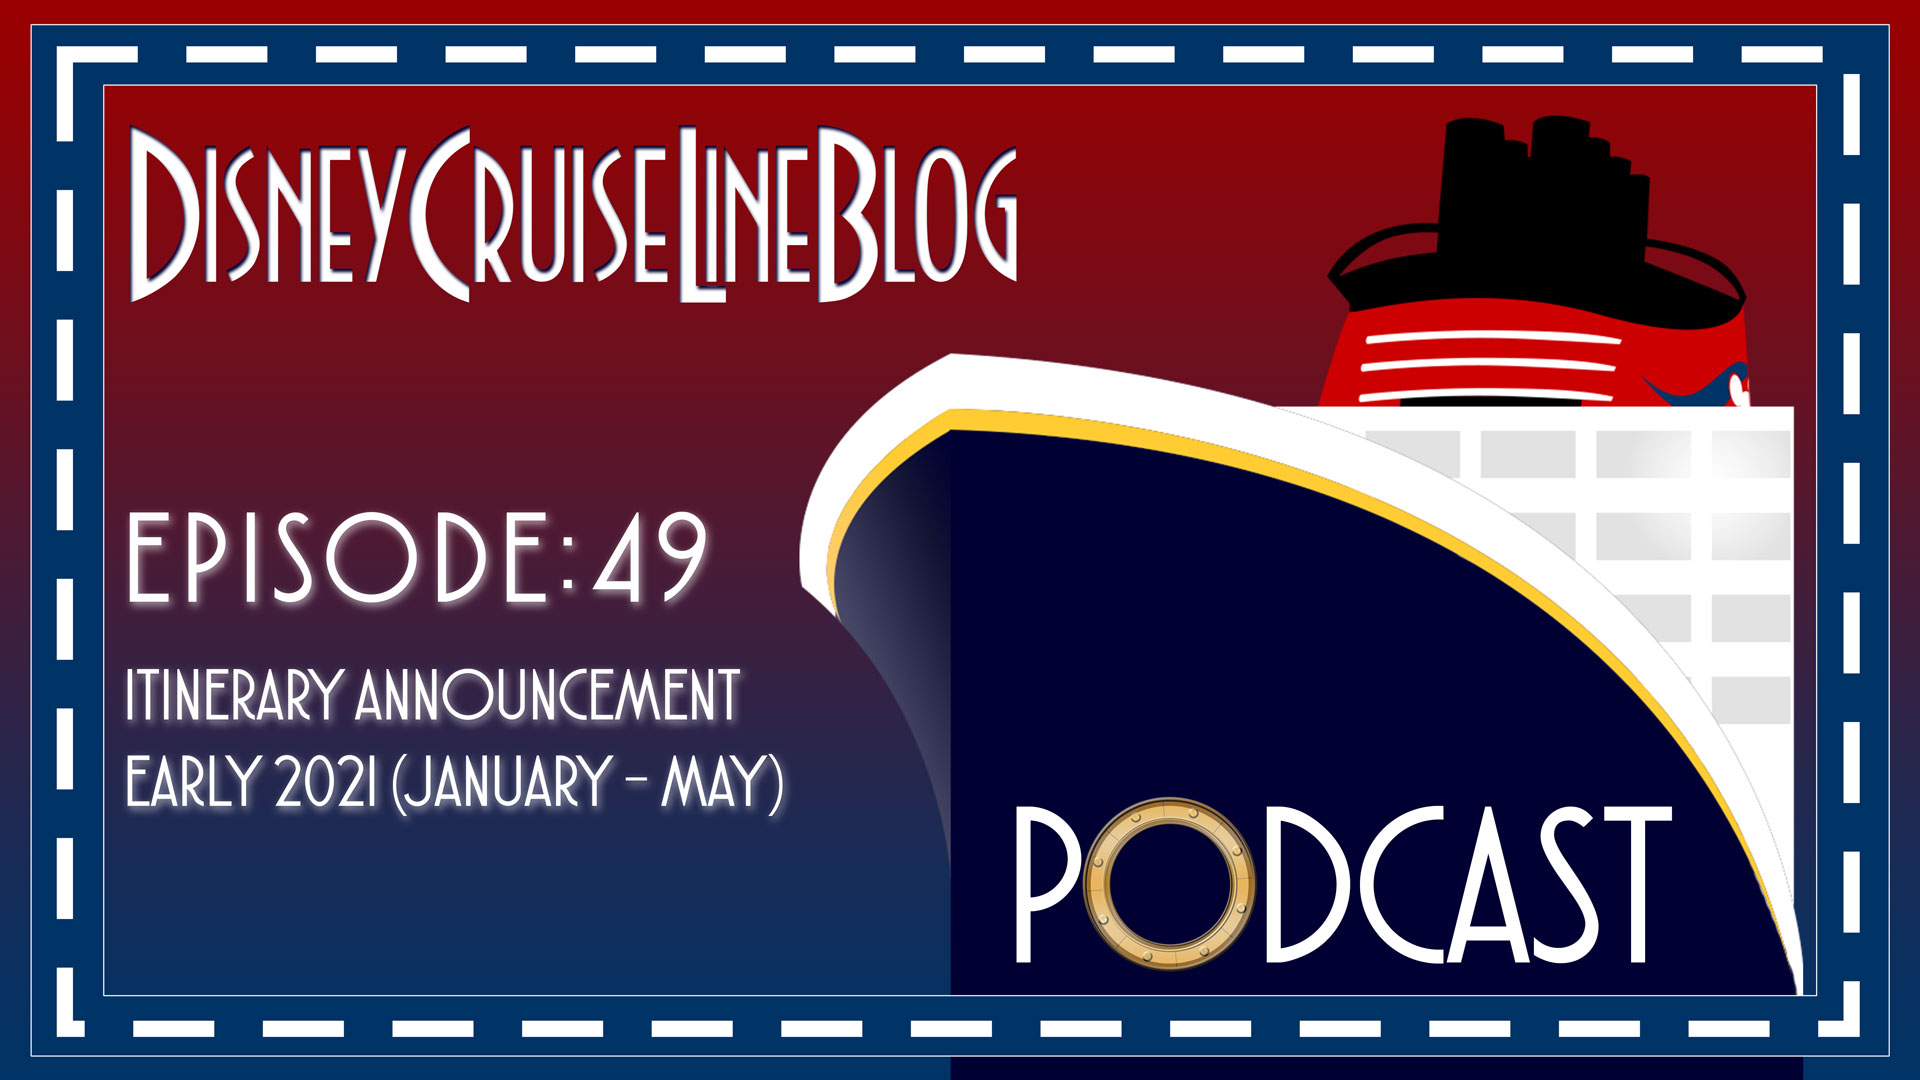 DCL Blog Podcast Episode 49 Early 2021 Itinerary Announcement